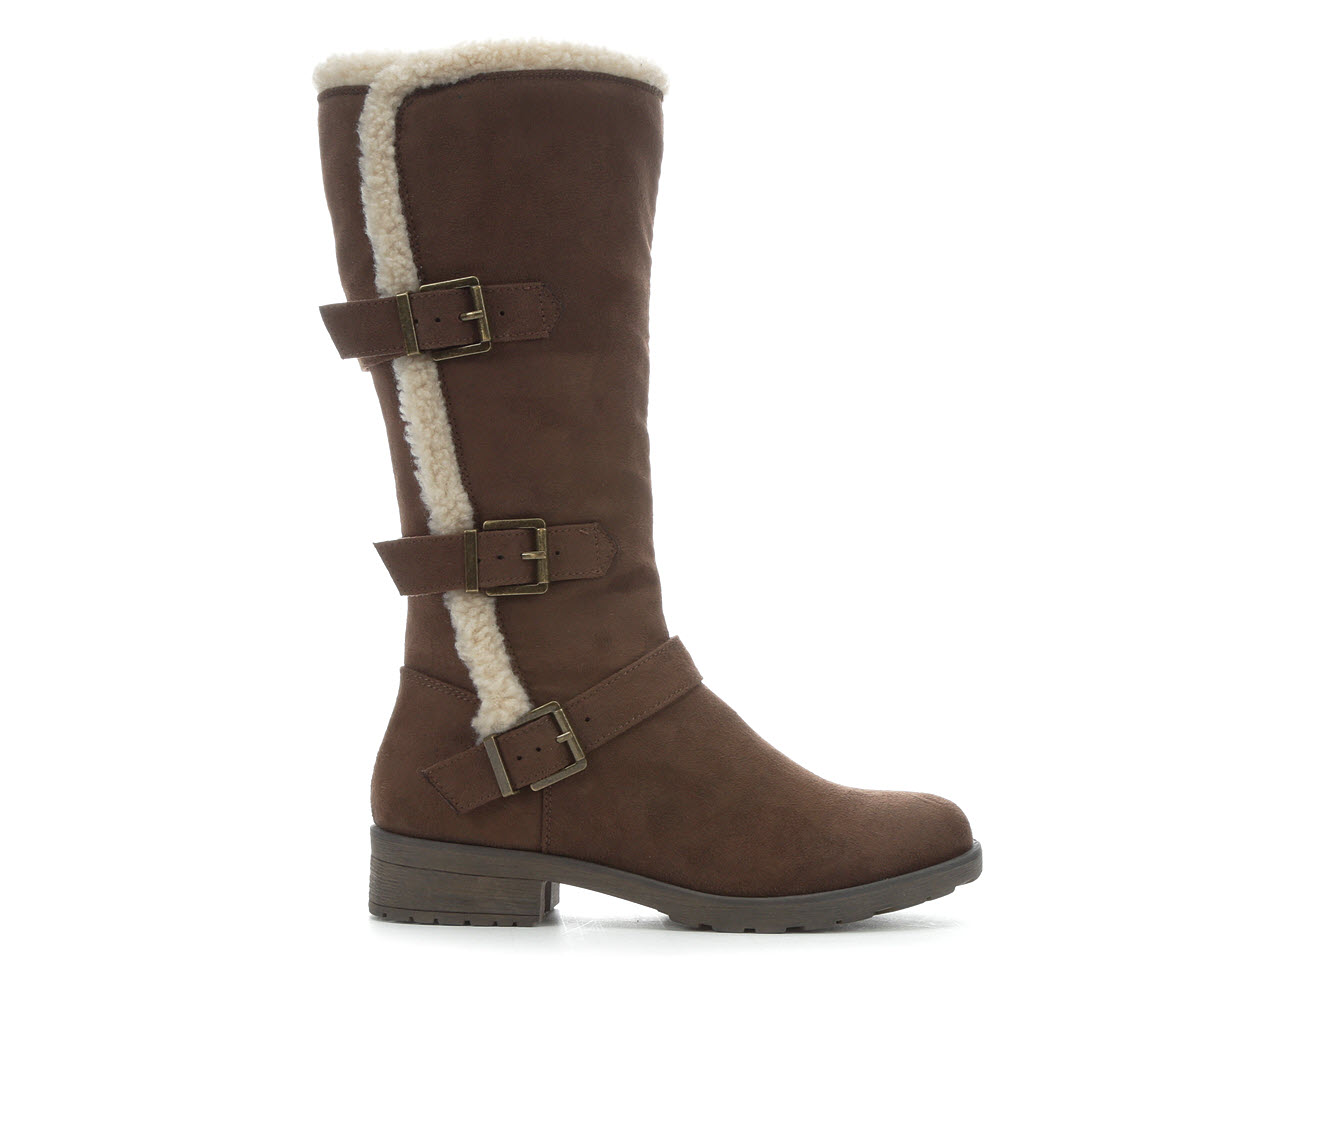 White Mountain Santell Women's Boots (Brown - Faux Leather)